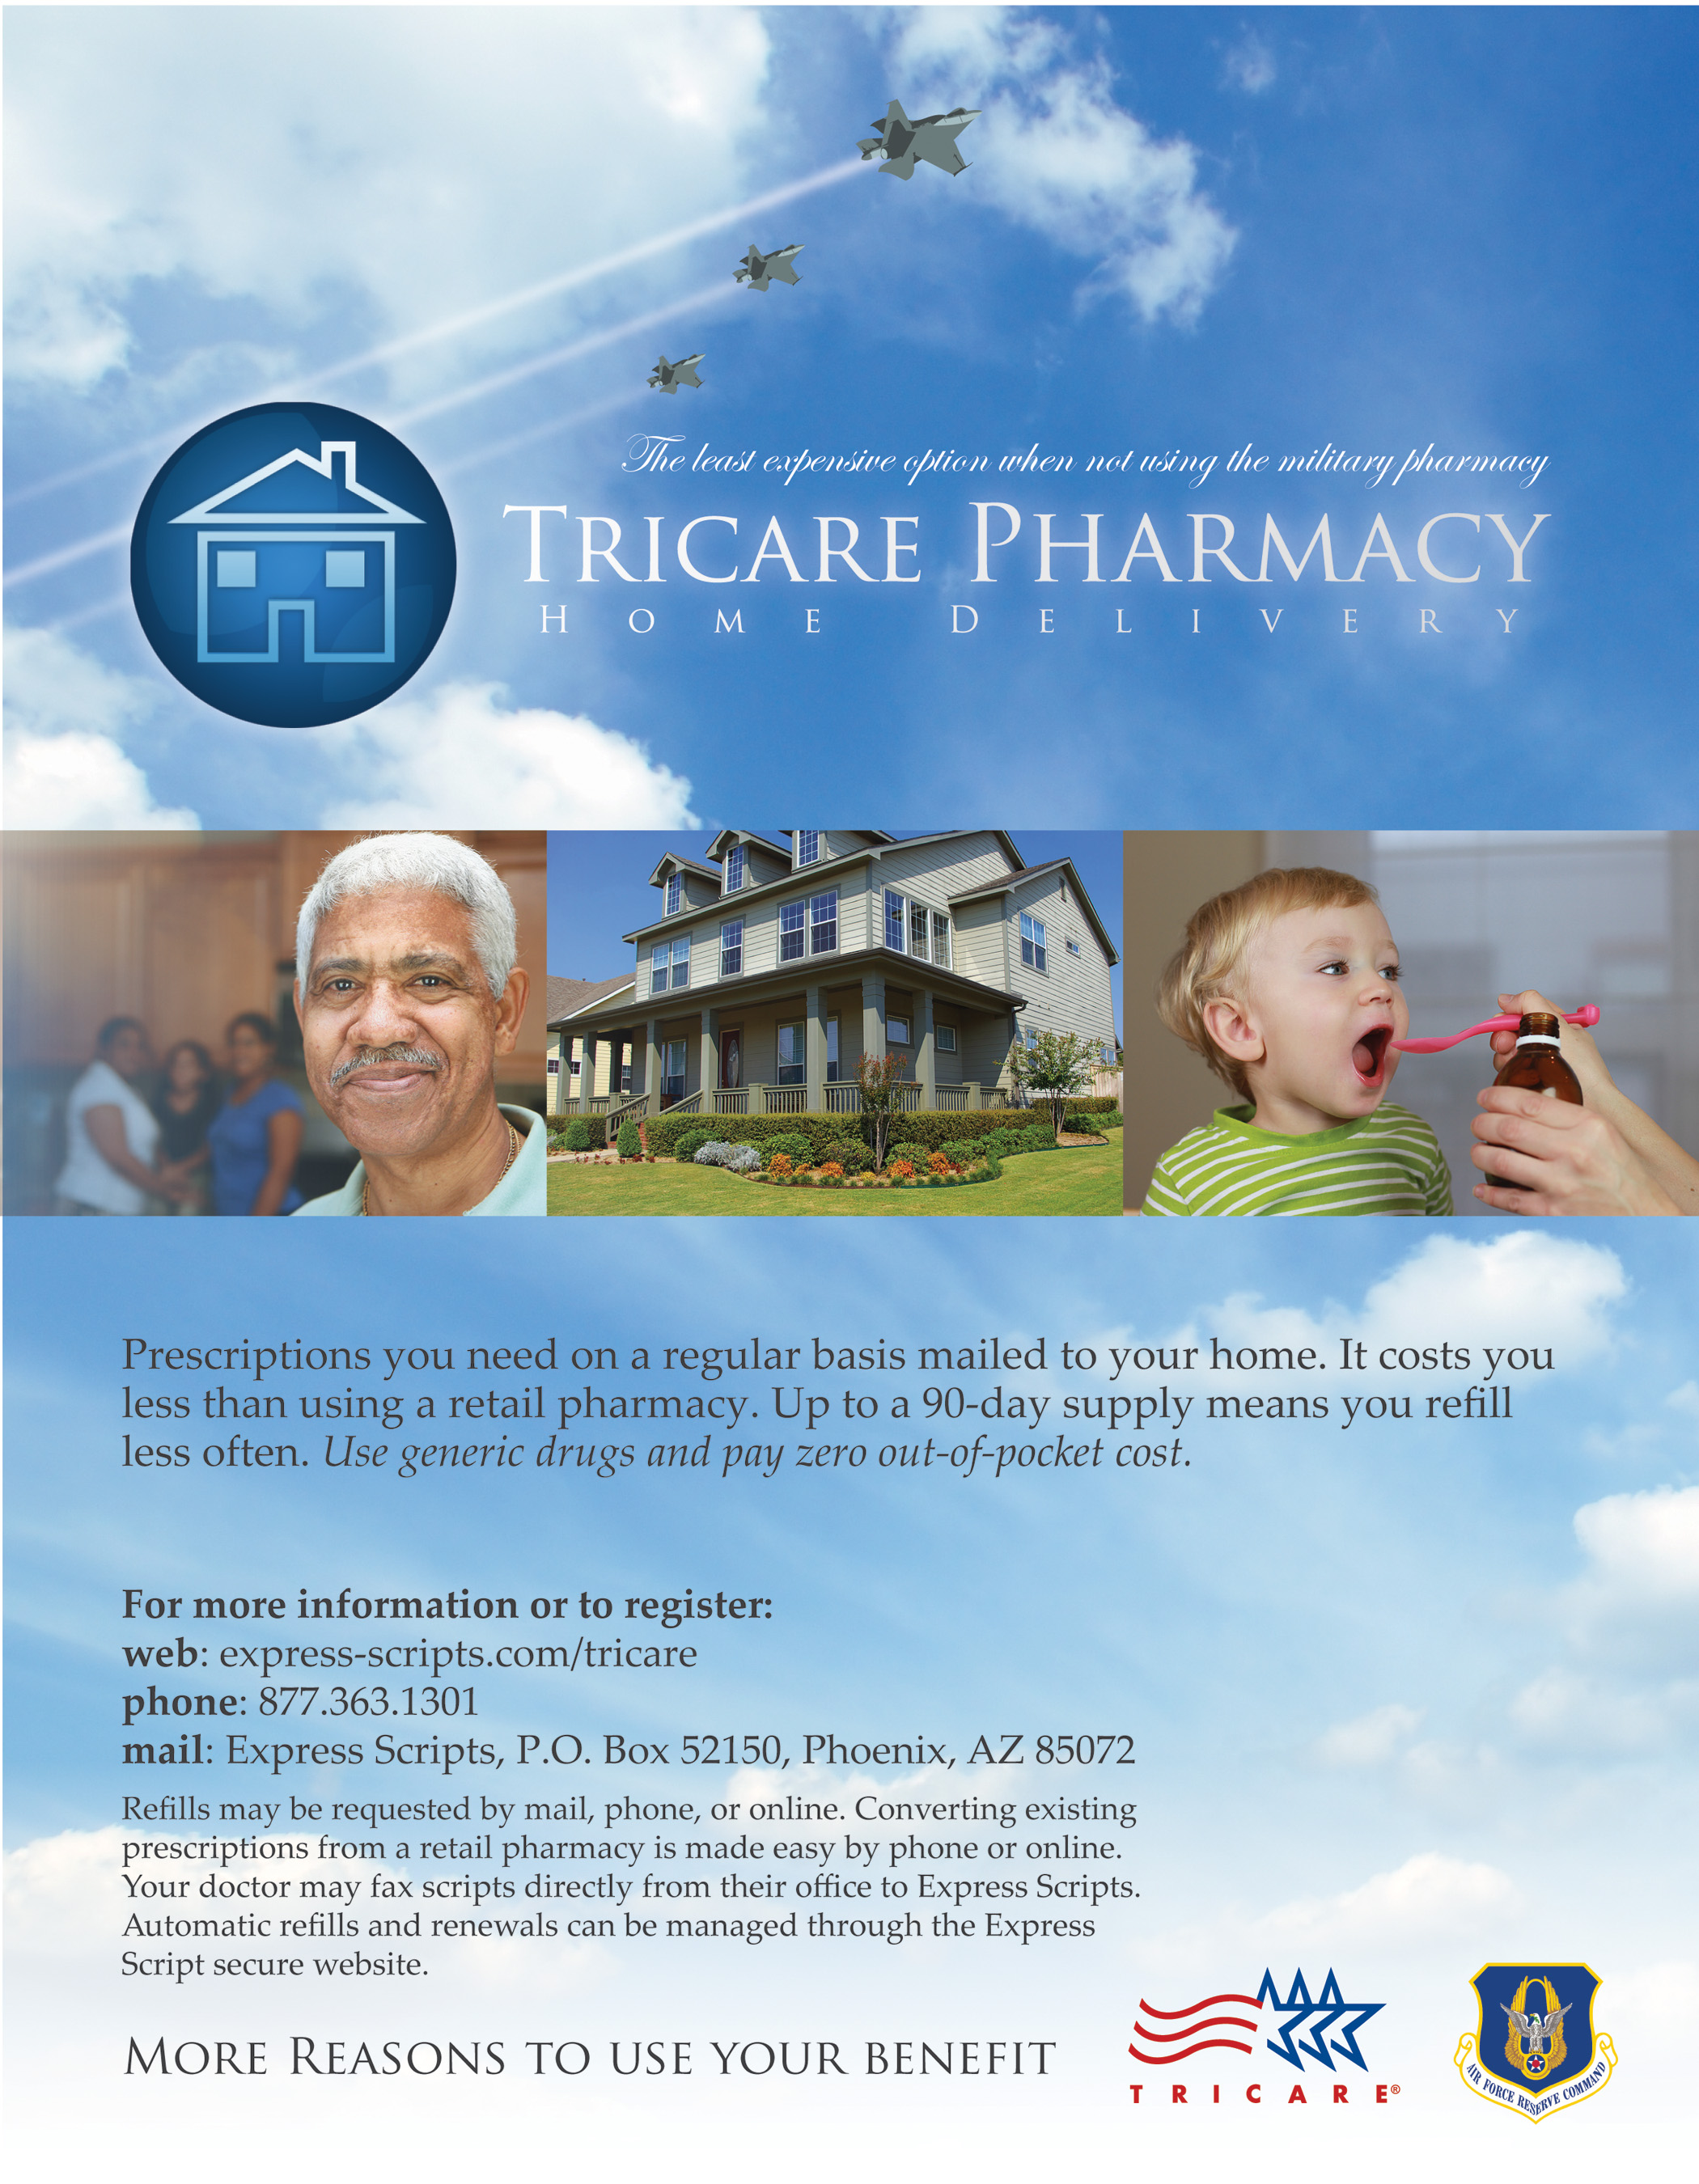 From the Tricare Advisor: Pharmacy home delivery program is